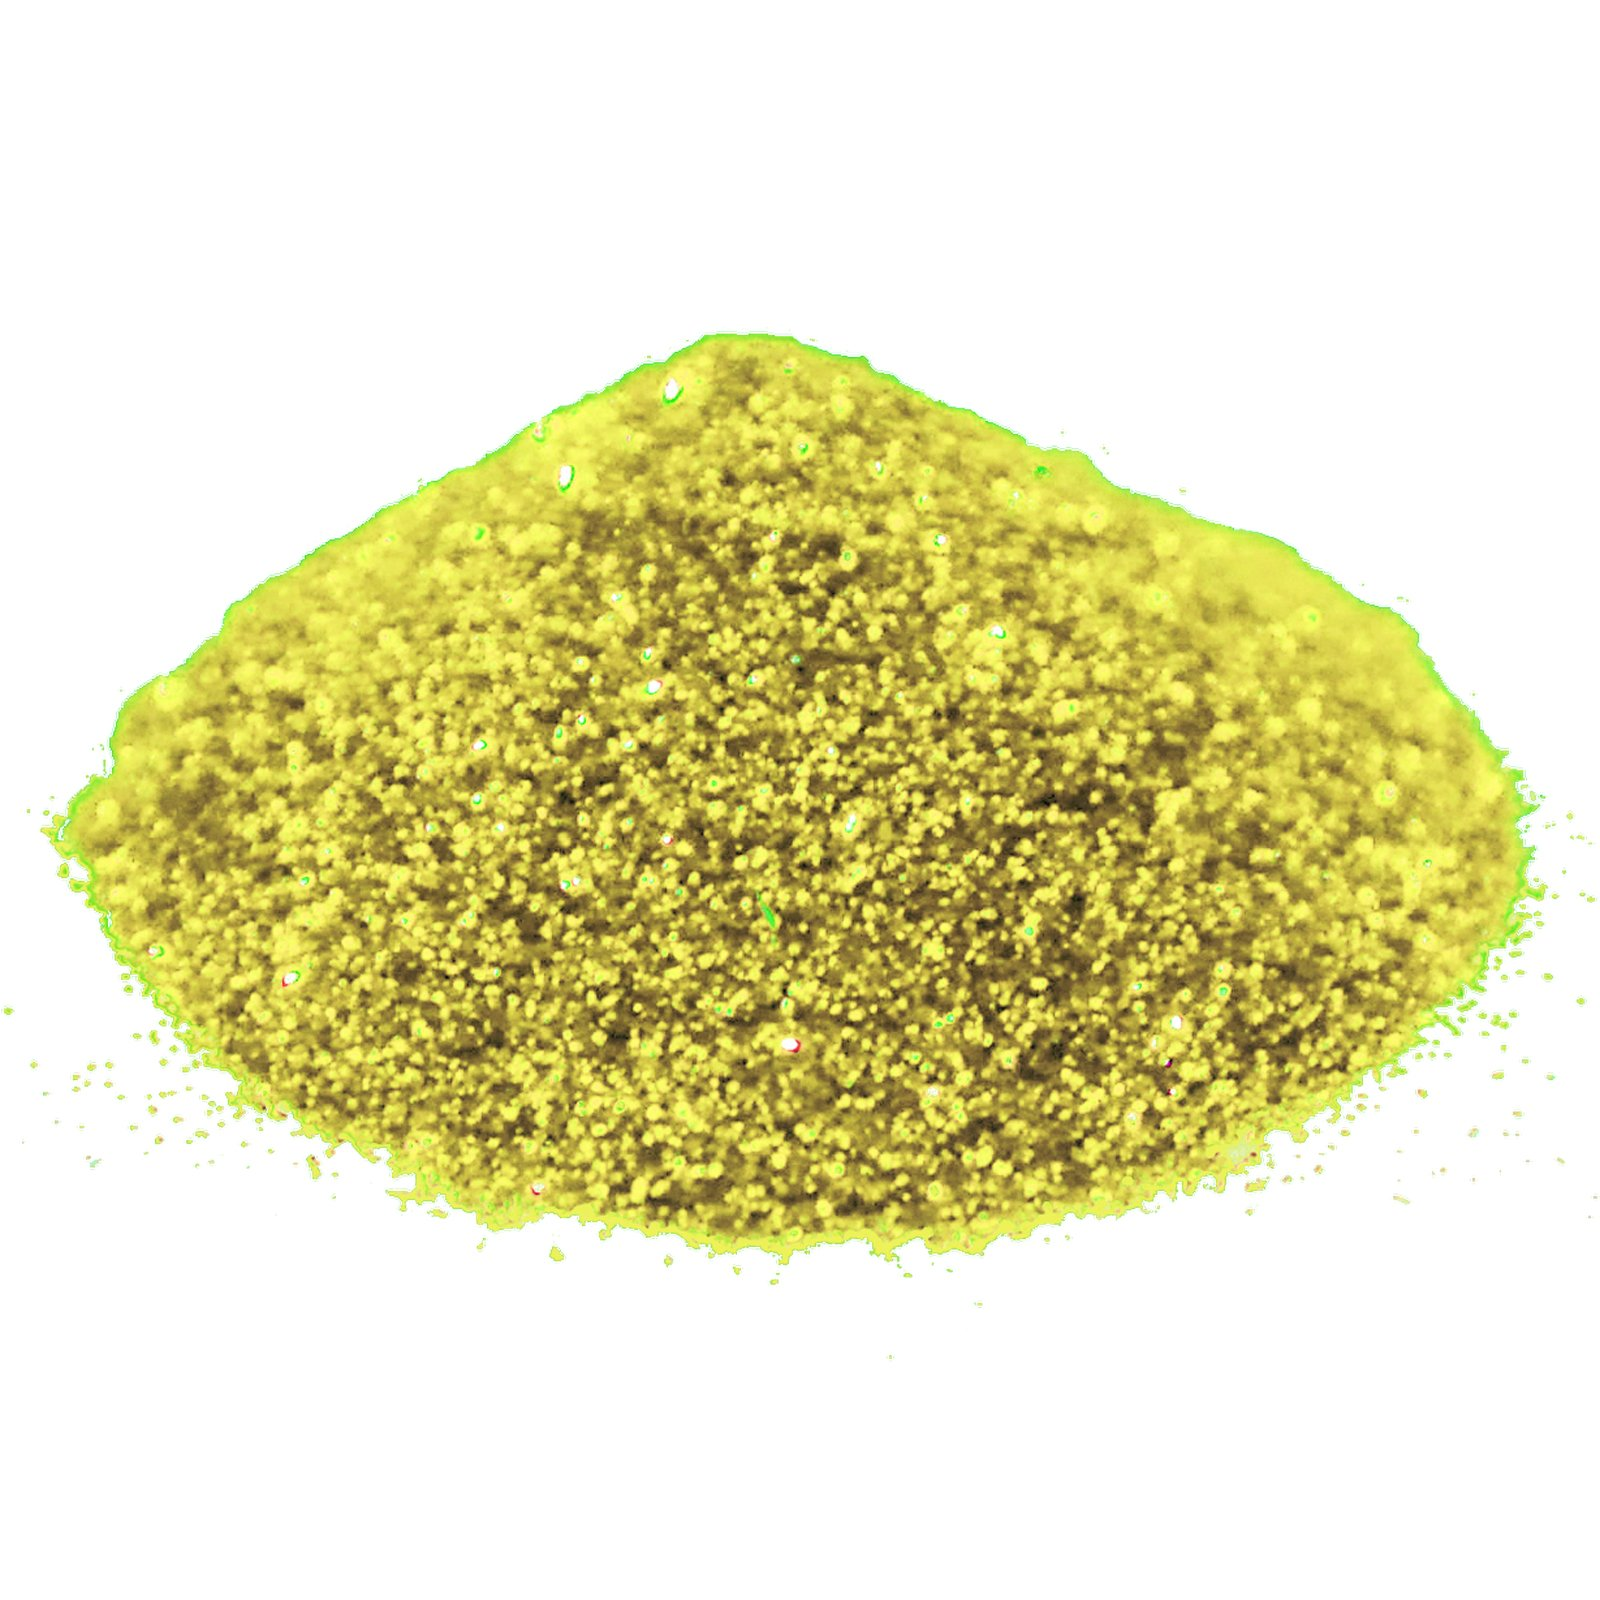 Asian Hobby Crafts Glitter Sparkle Powder, Golden product image